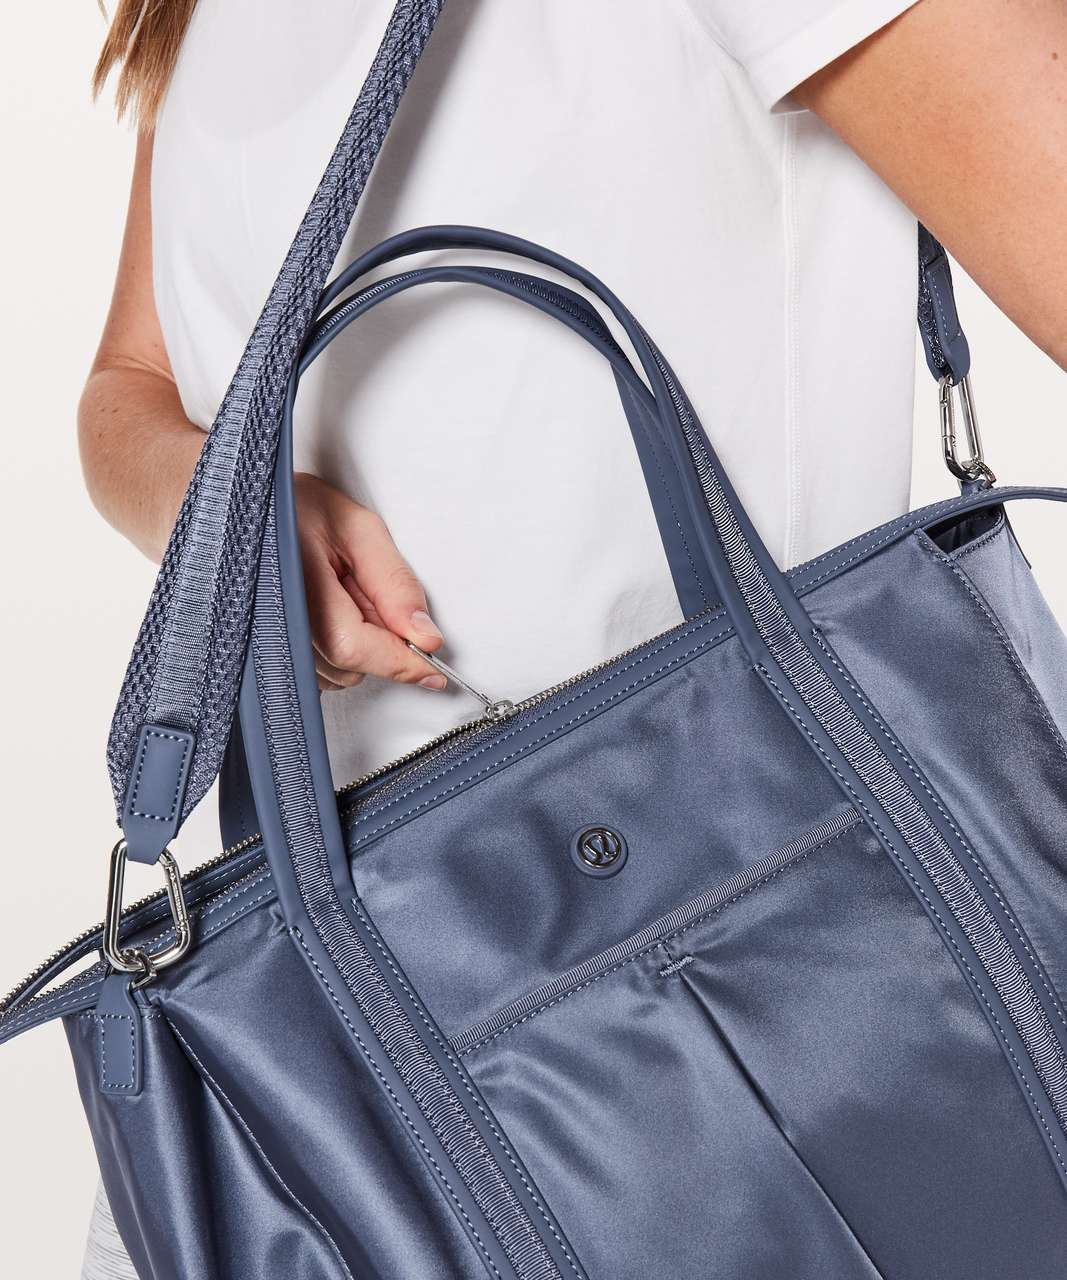 Lululemon Everywhere Bag *23L - Shade